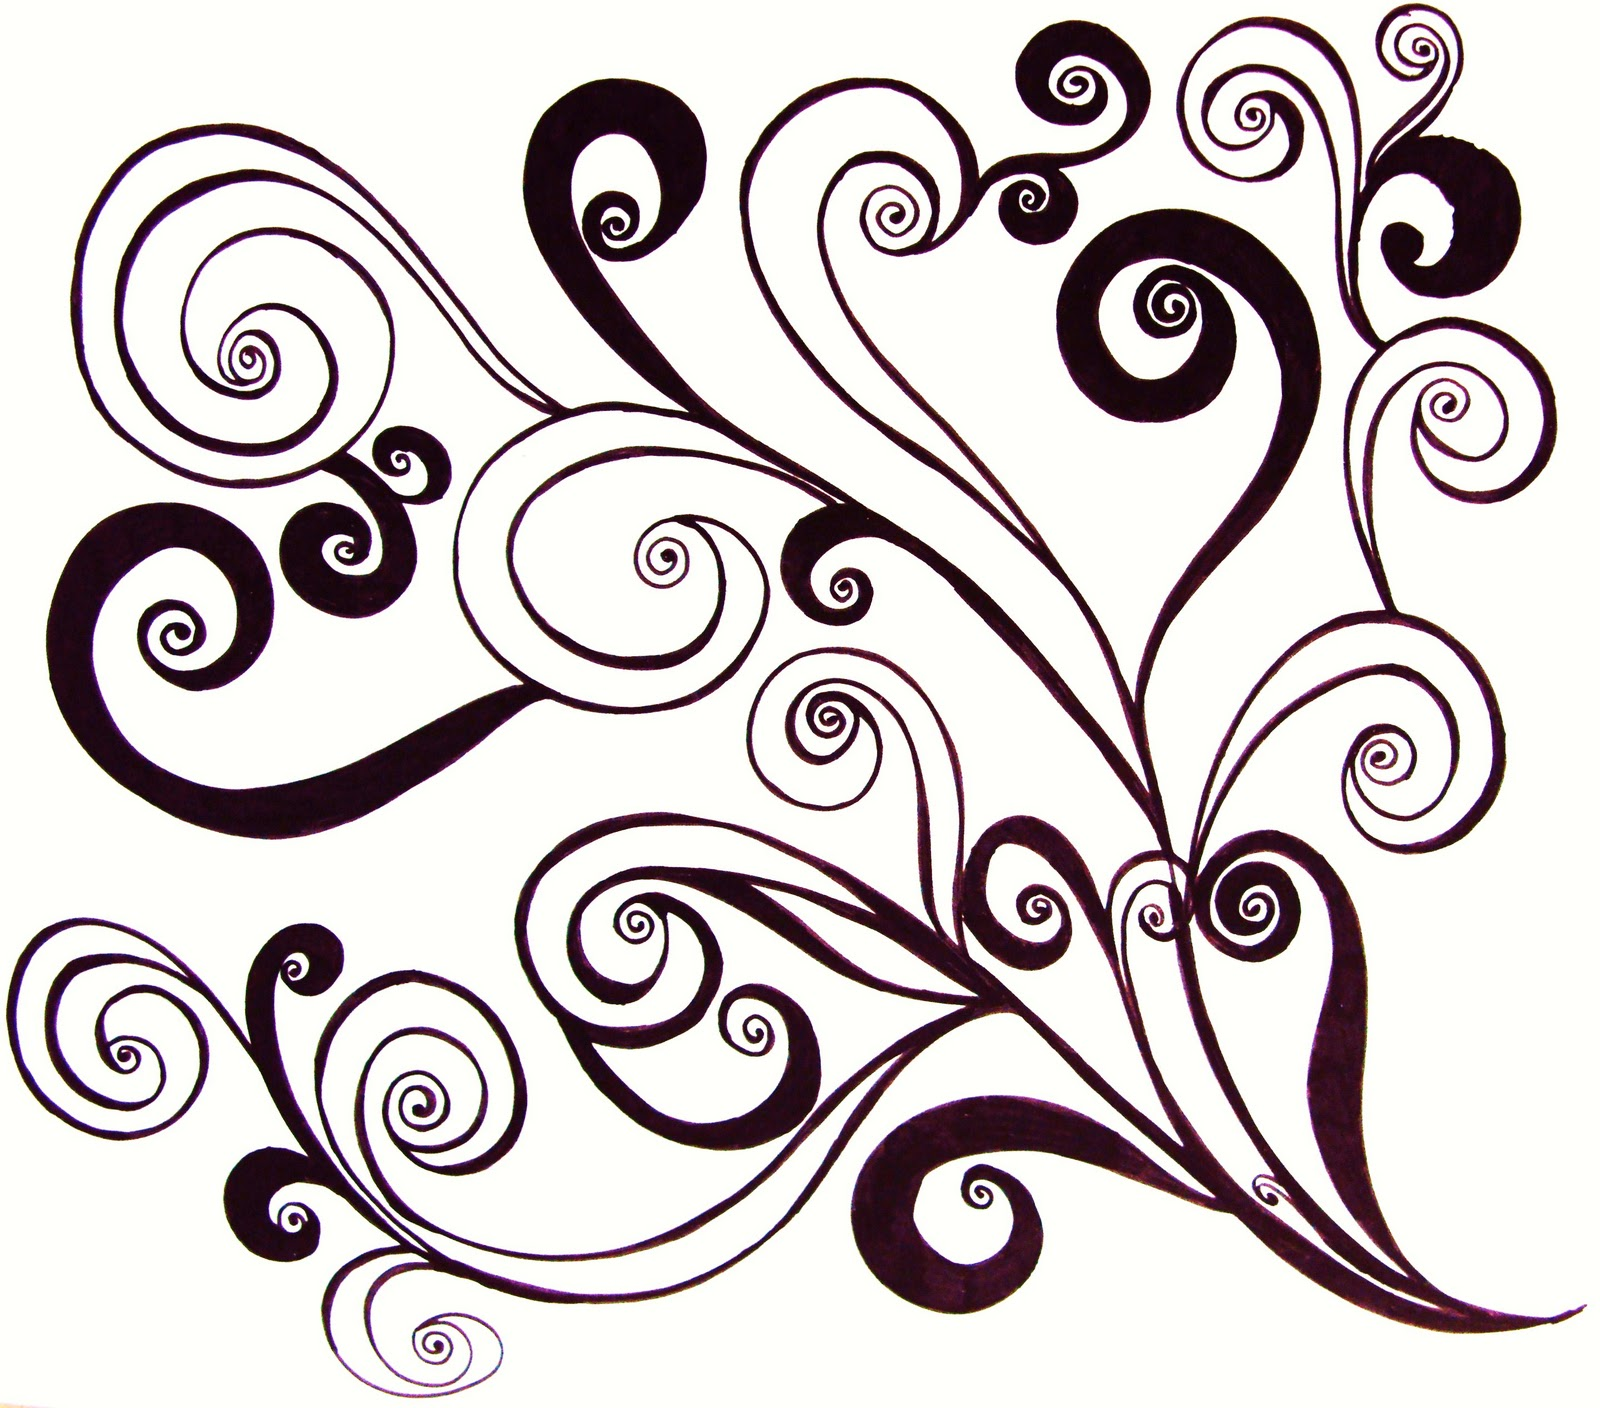 Enjoy these free printable flower swirl coloring pages for adults! Calming and fun!